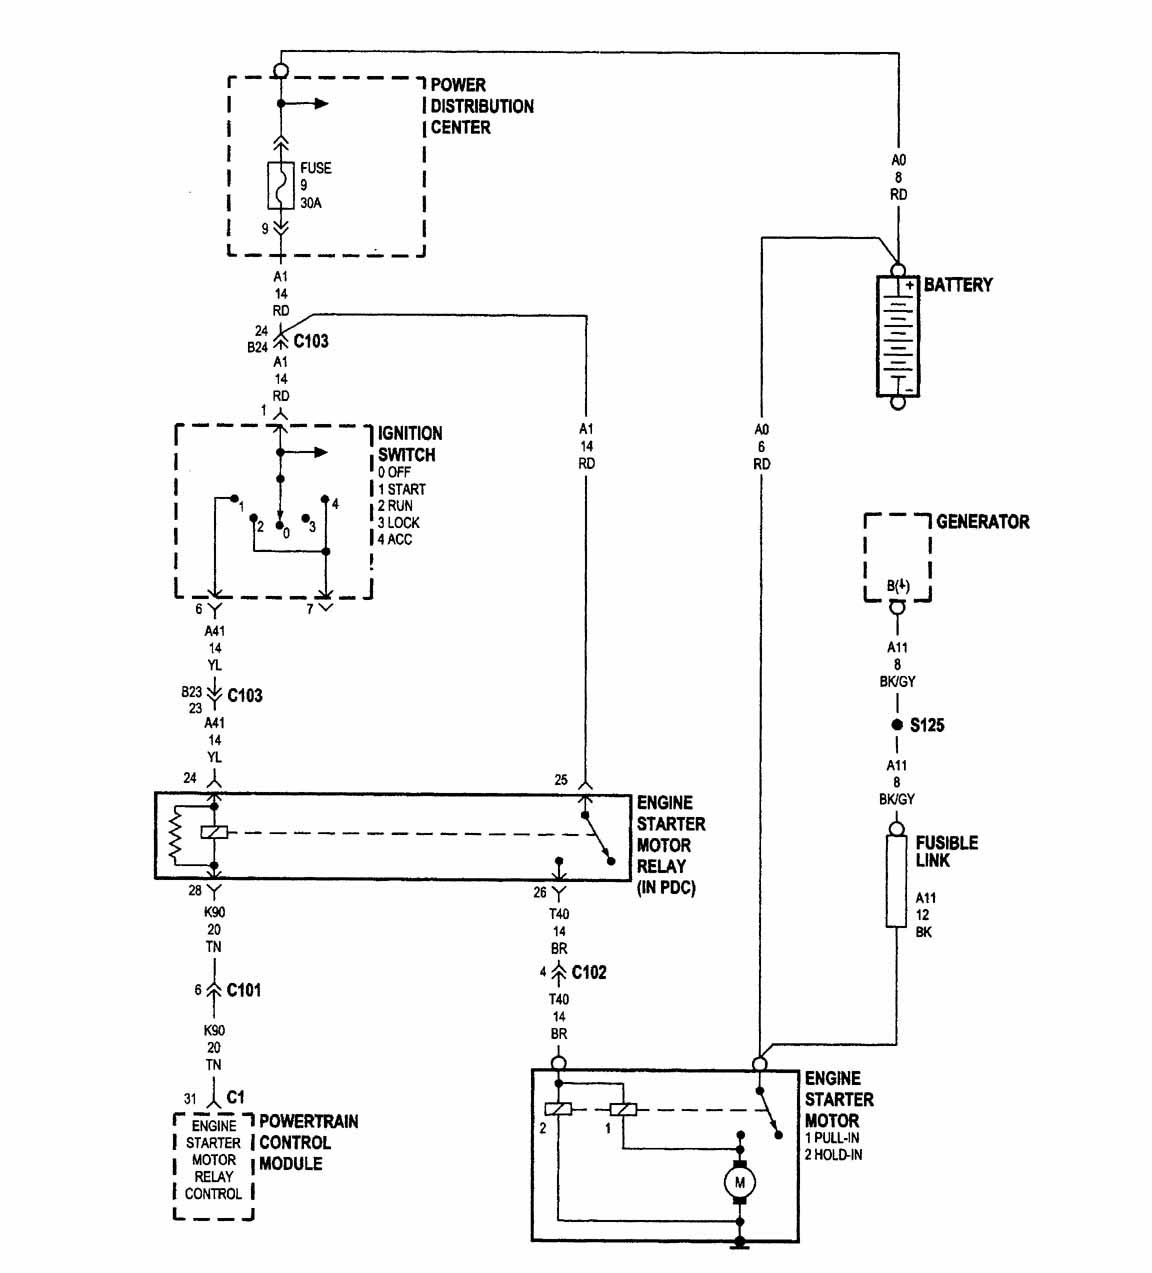 Light Switch Dodge Neon Schematic Wiring Diagram Advice White A Advice White A Bowlingronta It